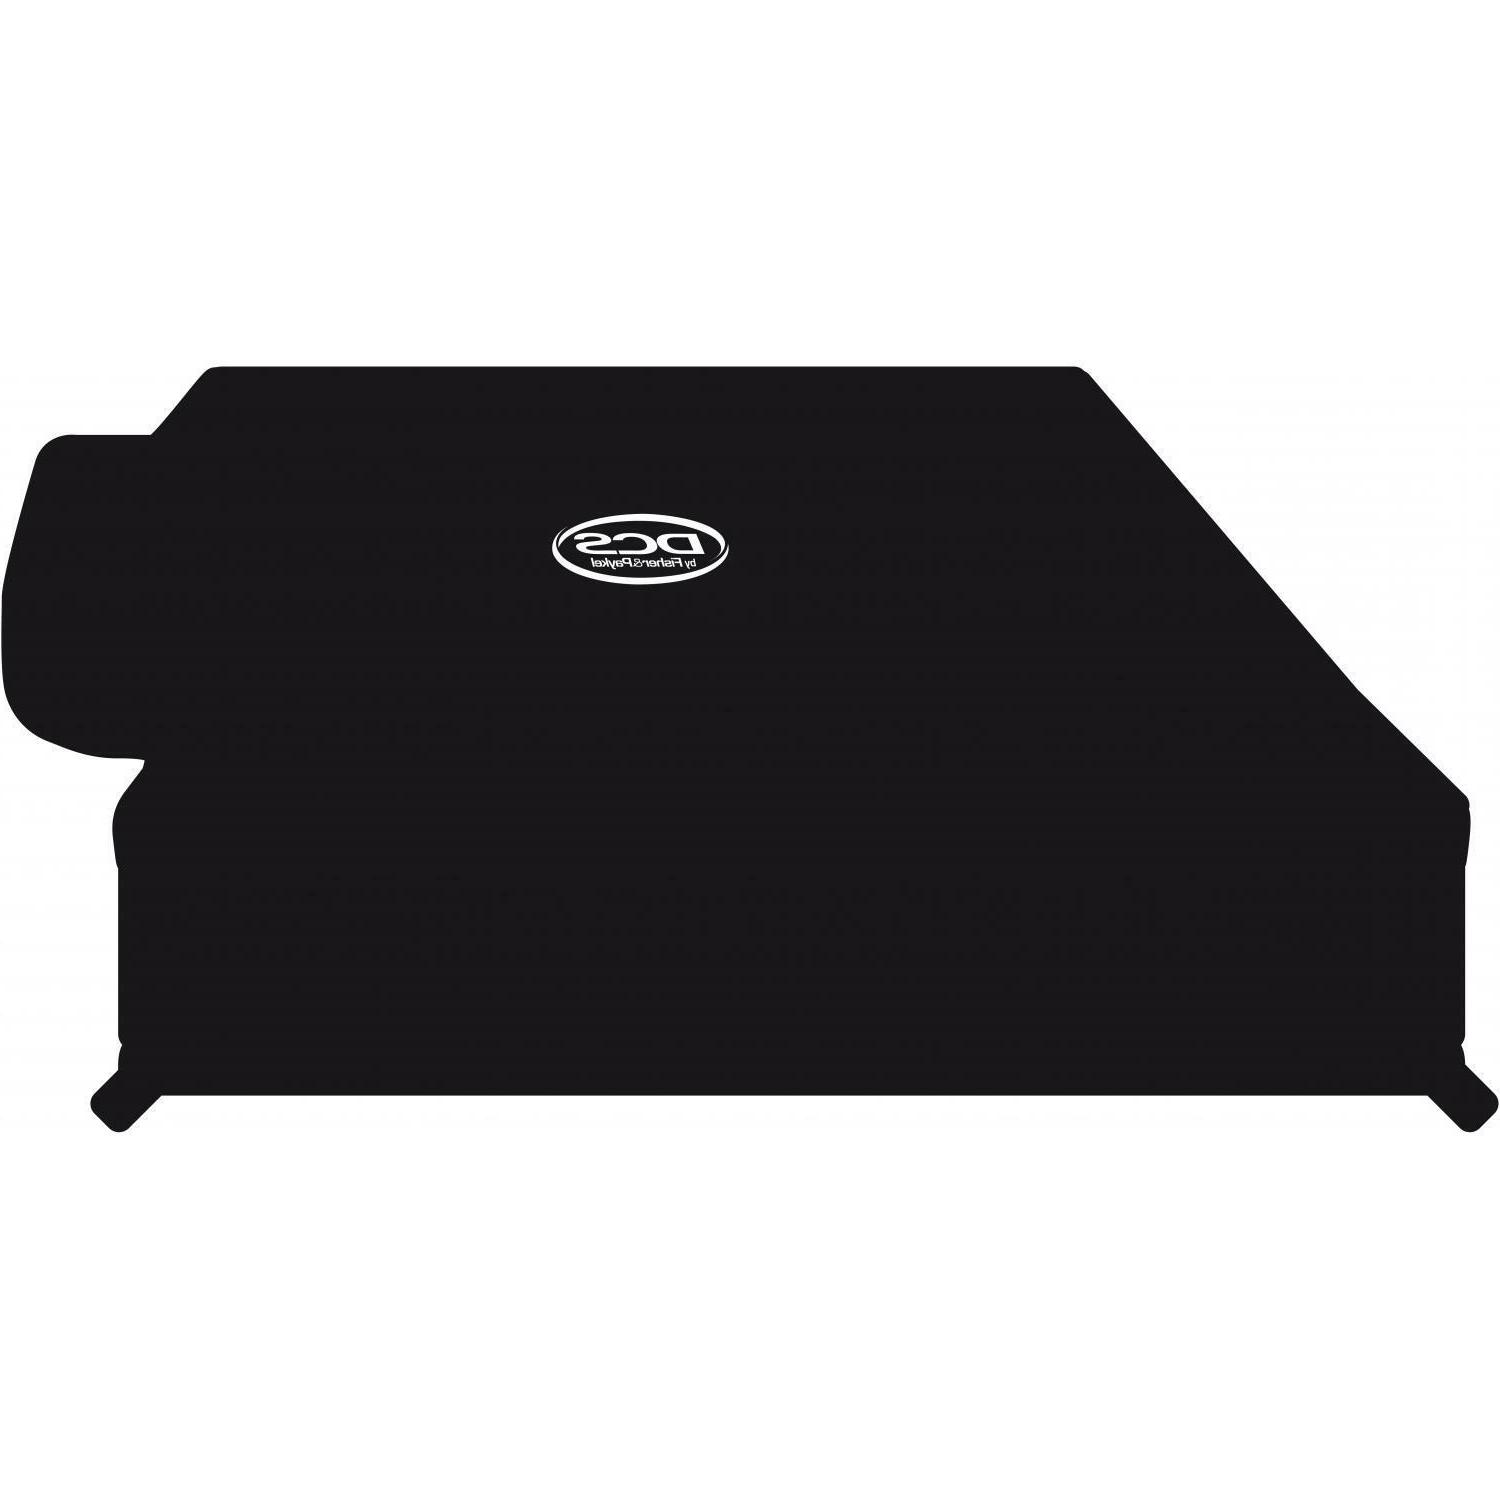 DCS Built-In Vinyl Cover for 48-Inch Grill with Side Burner